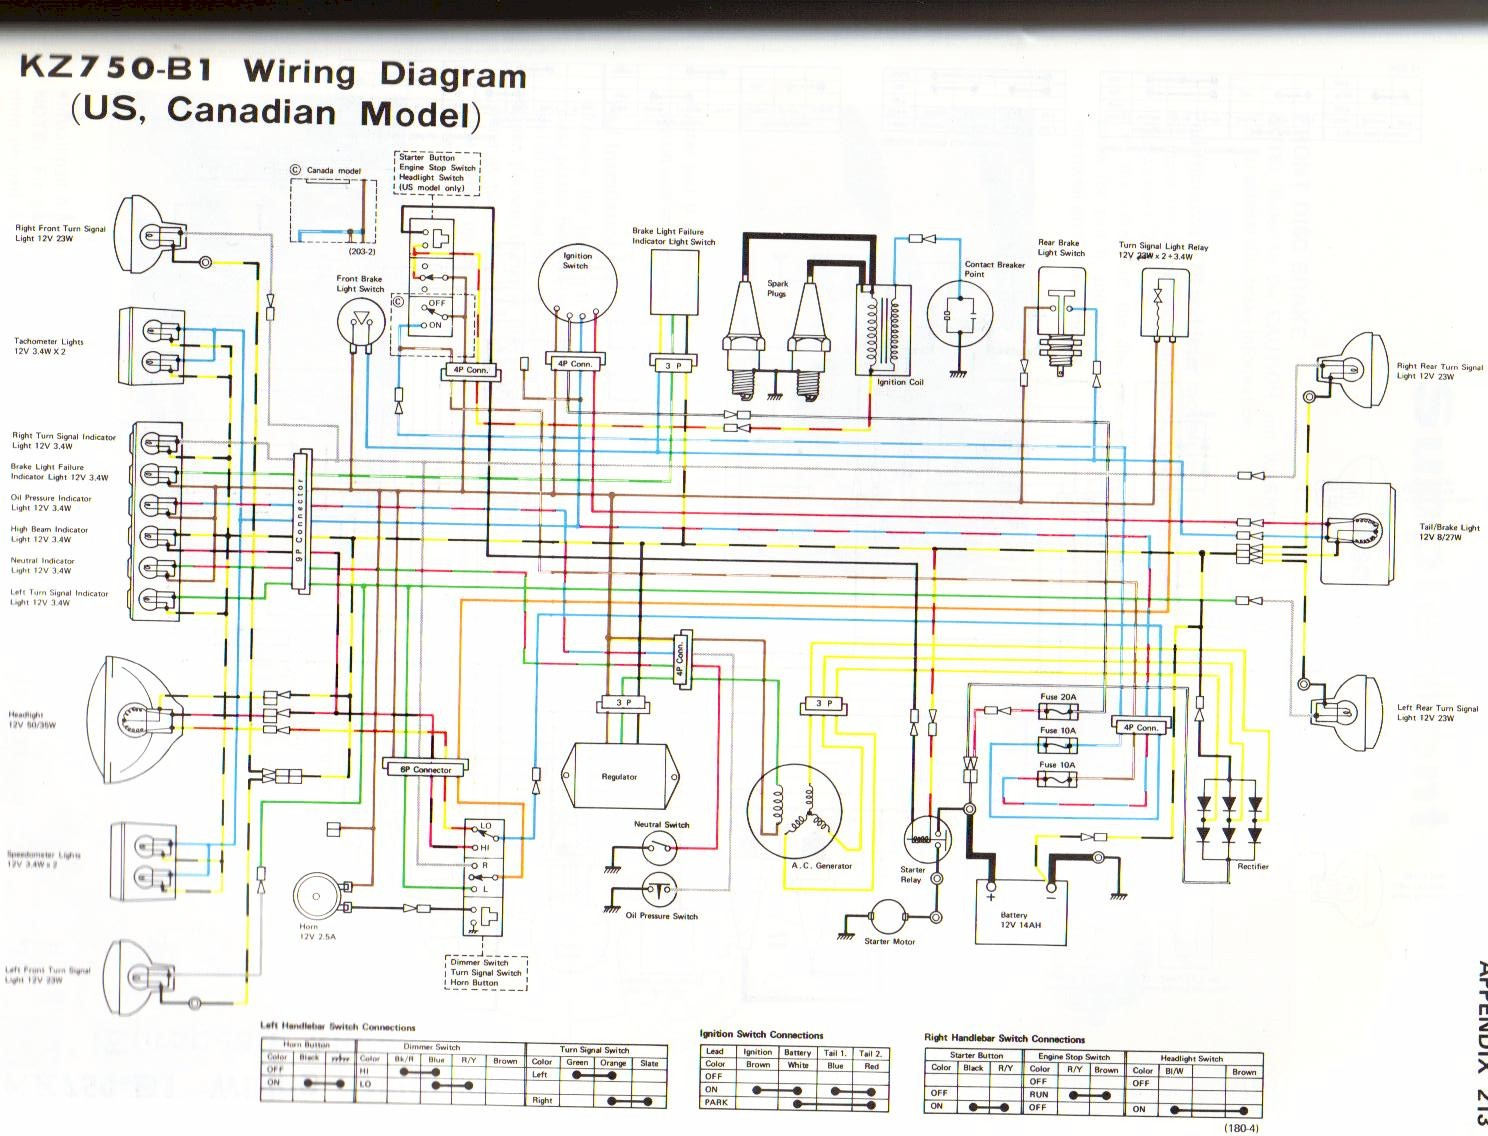 15882 Kz1000 Wiring Diagram Basic | Digital Resources on generator switchgear diagram, generator stator winding diagram, home generator diagram, slack adjuster diagram, transmission diagram, generator plug wire, generator schematic diagram, generator connection diagram, traffic flow diagram, ac generator diagram, generator avr circuit diagram, bicycle schematic diagram, switch diagram, container twist lock diagram, alternator schematic diagram, generator exciter diagram, standby generator grounding diagram, marathon generators wire diagram, generator components diagram, generator hook up diagram,